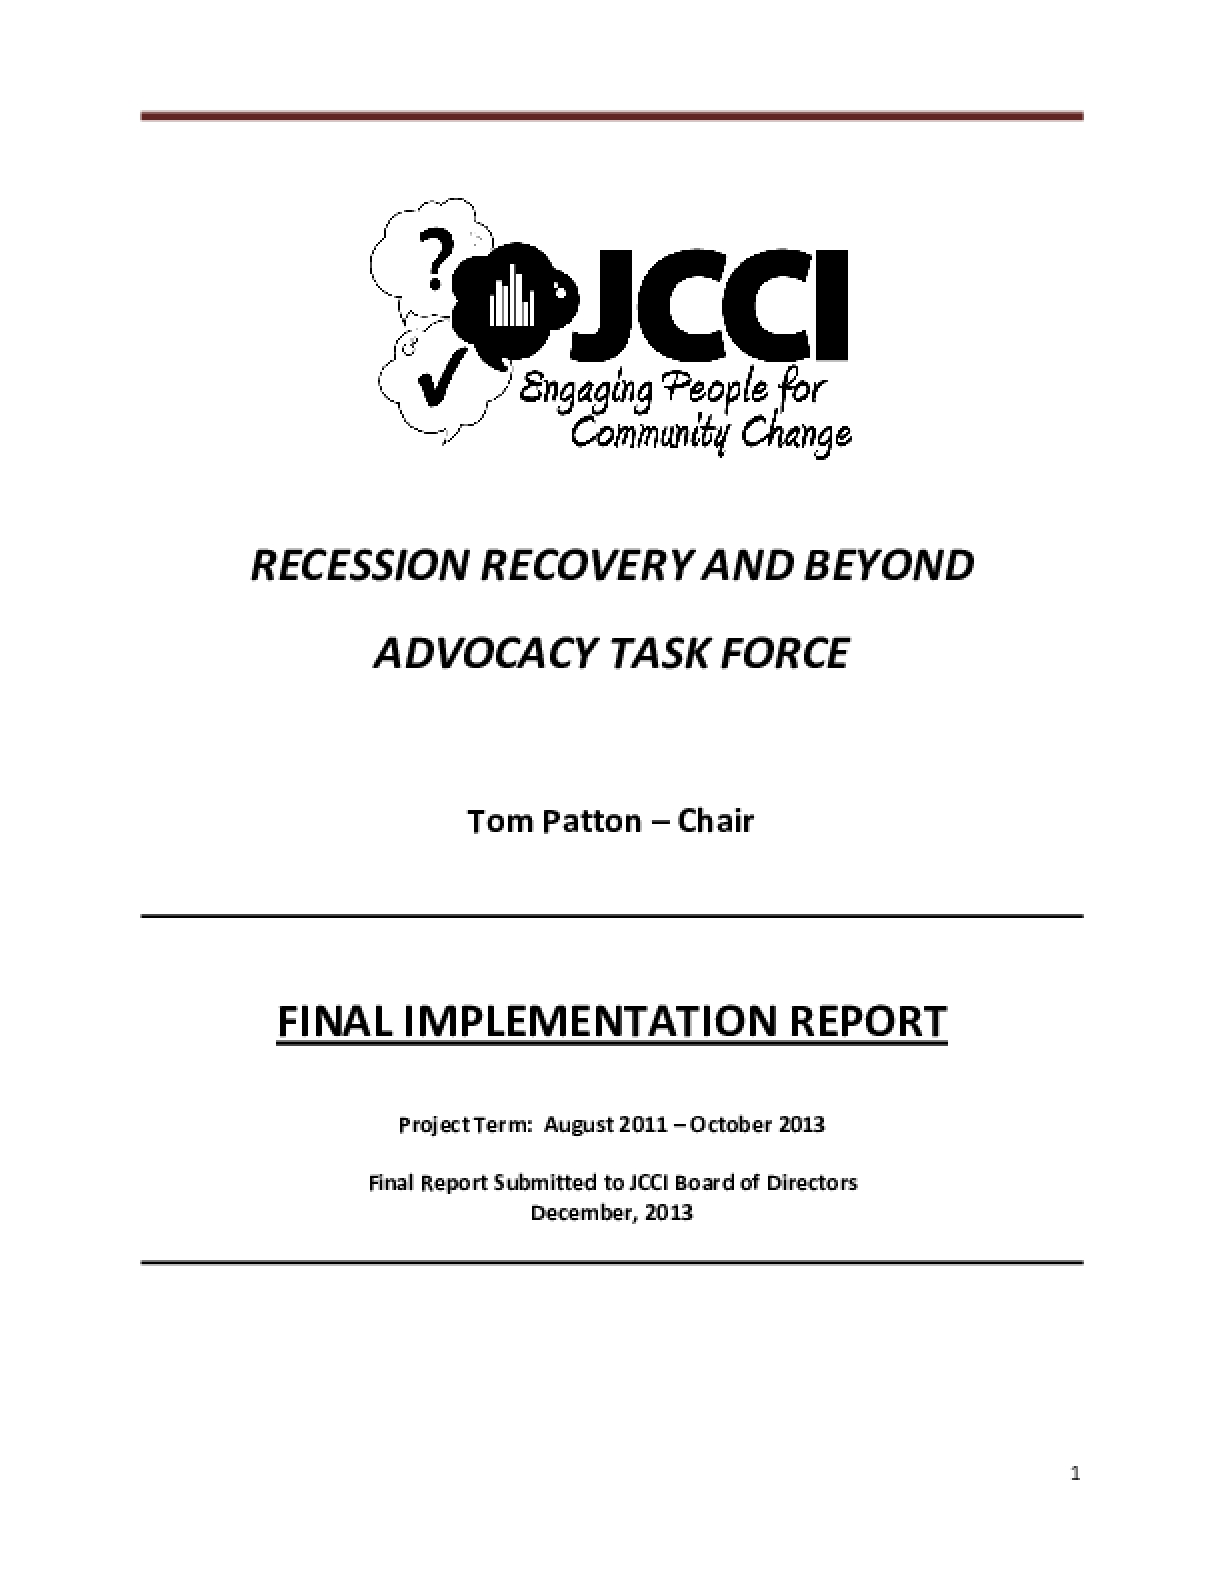 Recession Recovery and Beyond Advocacy Task Force: Final Implementation Report